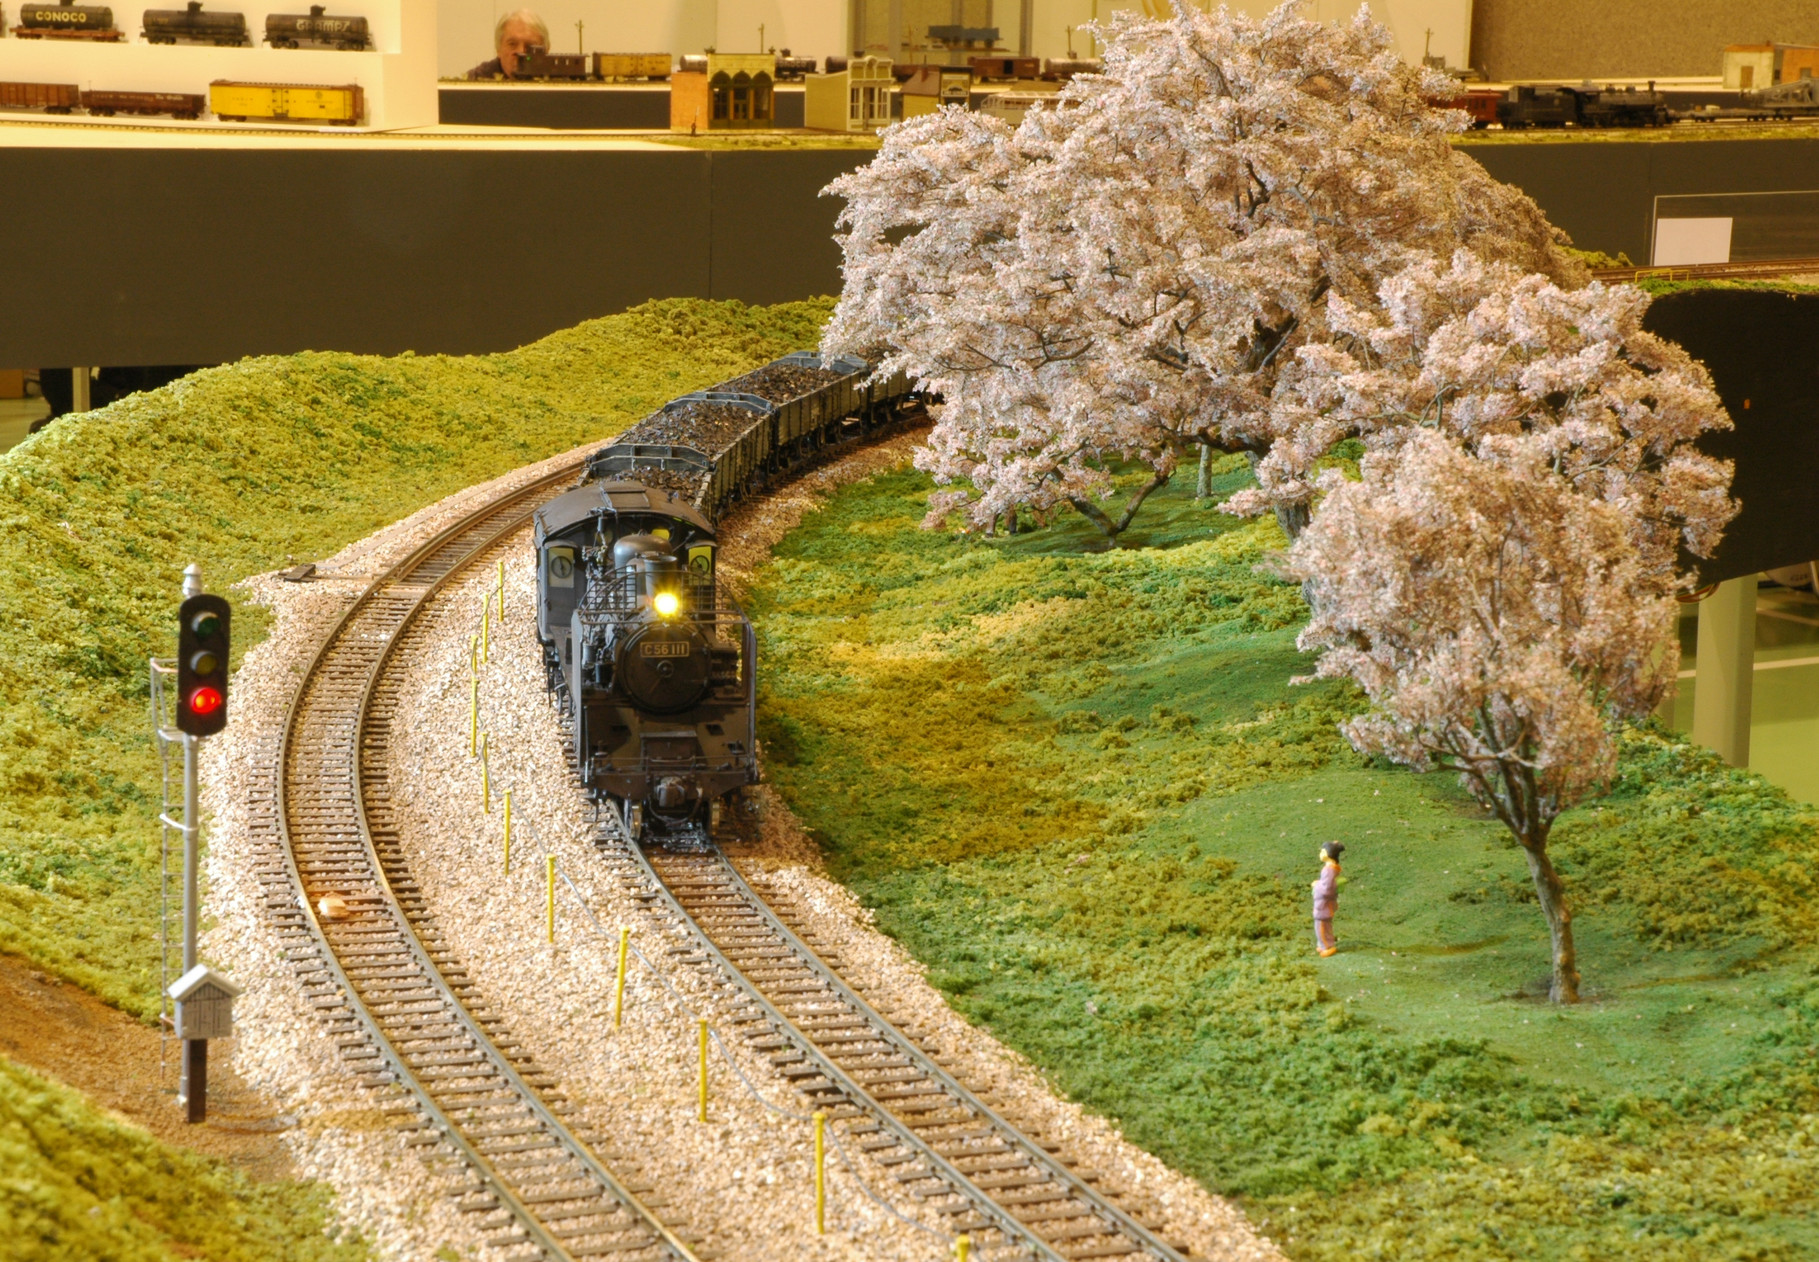 C56 passing the cherry blossom trees